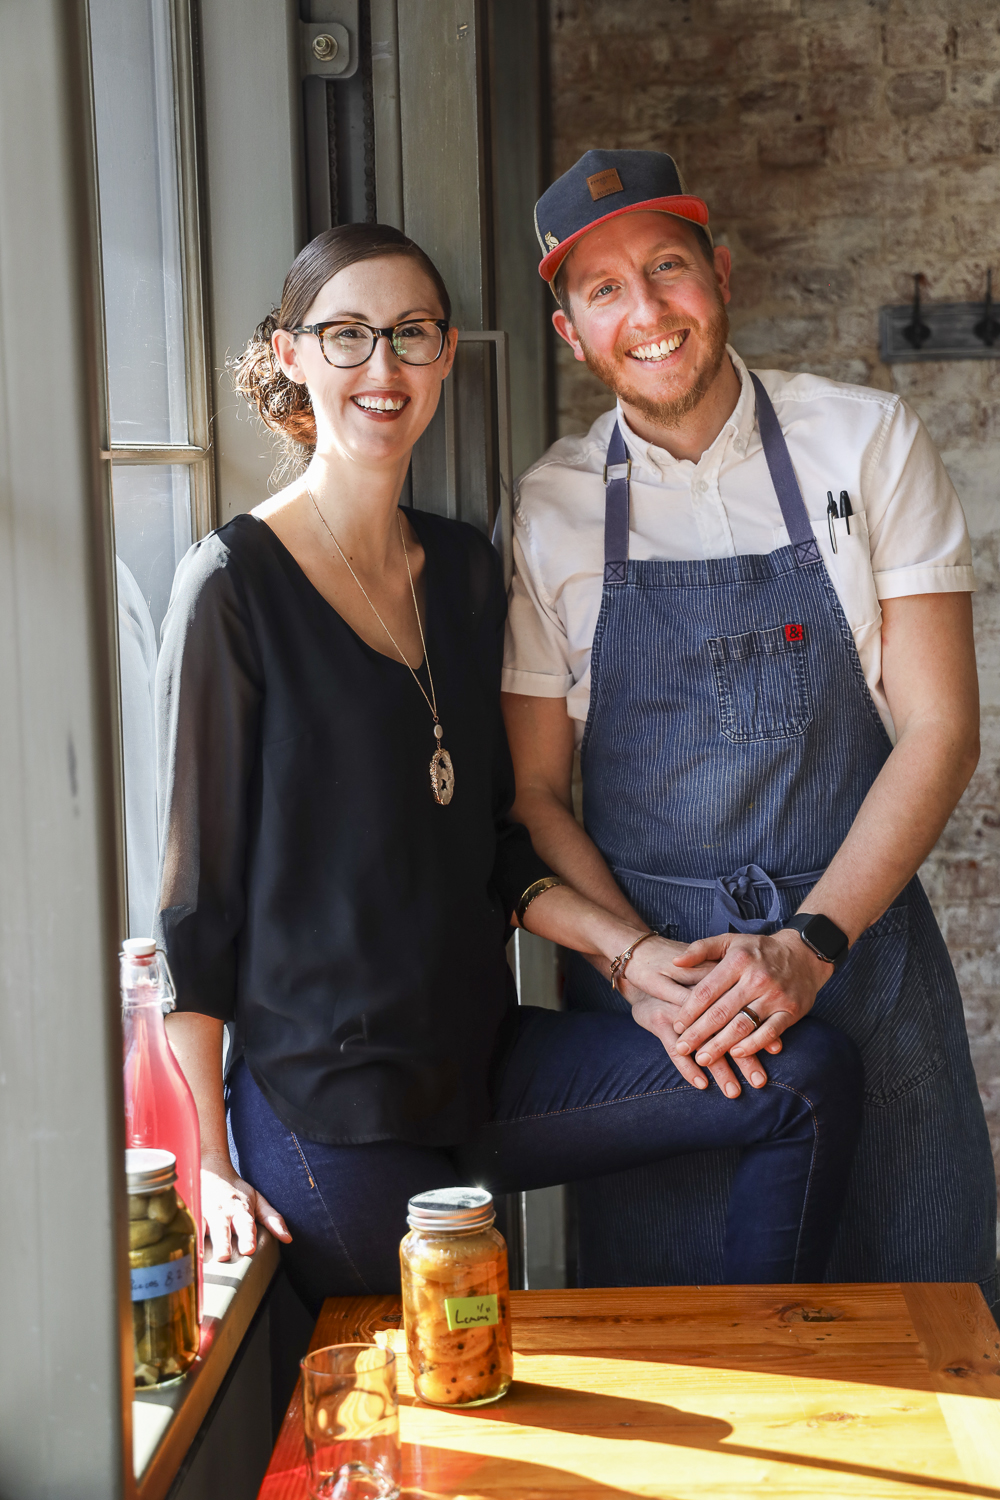 The Hoffmans, Michelle and Jeremy, welcome diners to their intimate restaurant that features house-made ingredients for the bar and kitchen, from local ingredients.